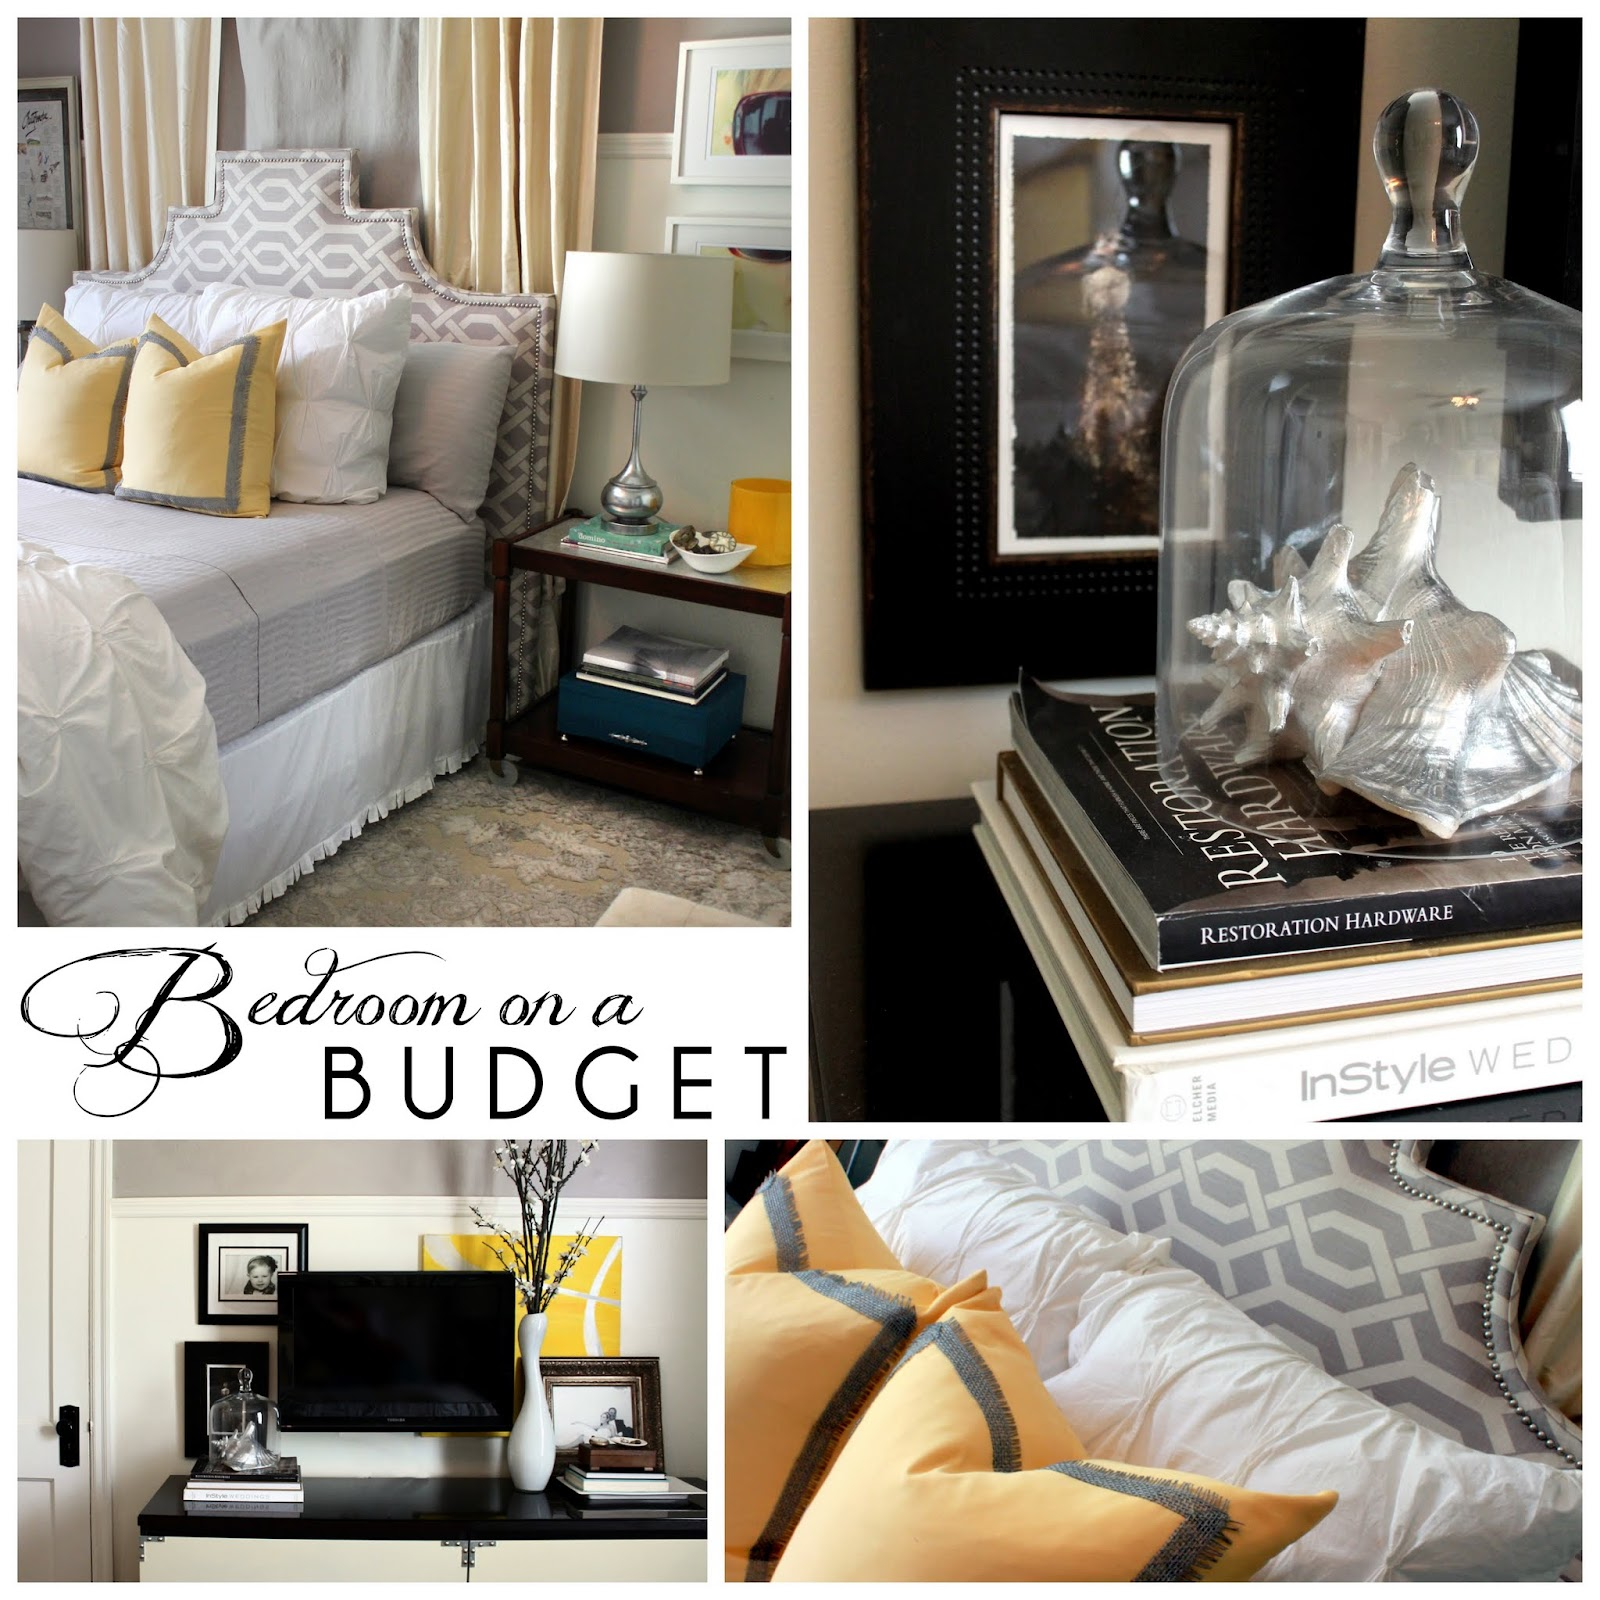 Bedroom Decorating Ideas On A Budget: Hunted Interior: Bedroom On A Budget